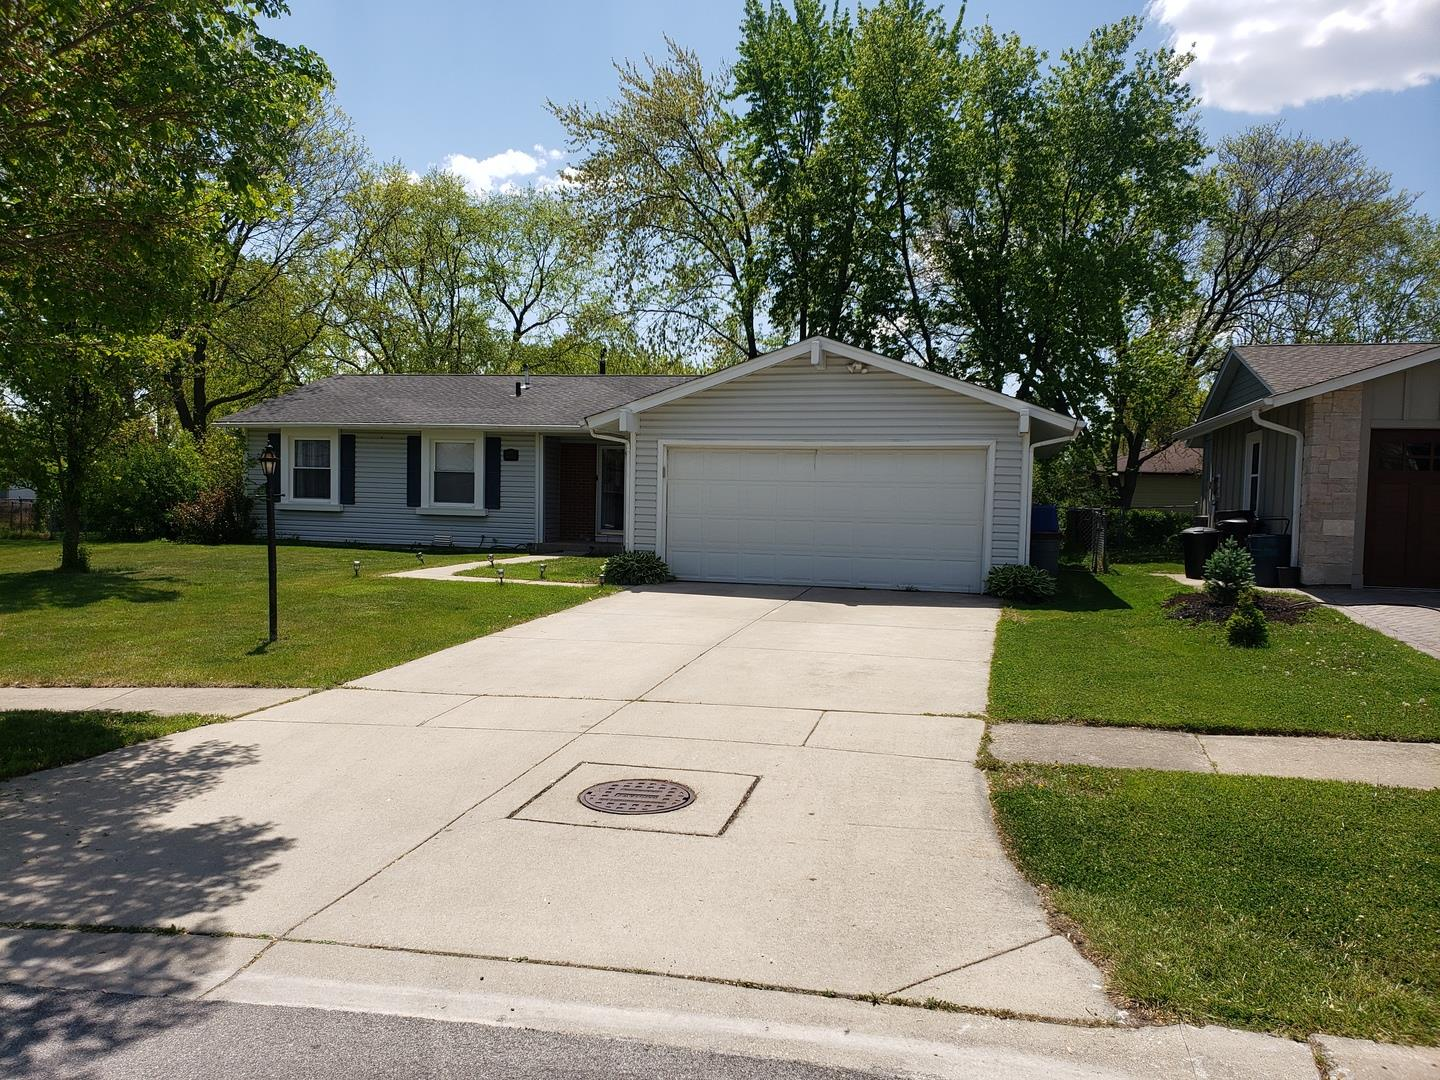 991 BORMAN Court, Elk Grove Village, IL 60007 - #: 11088210